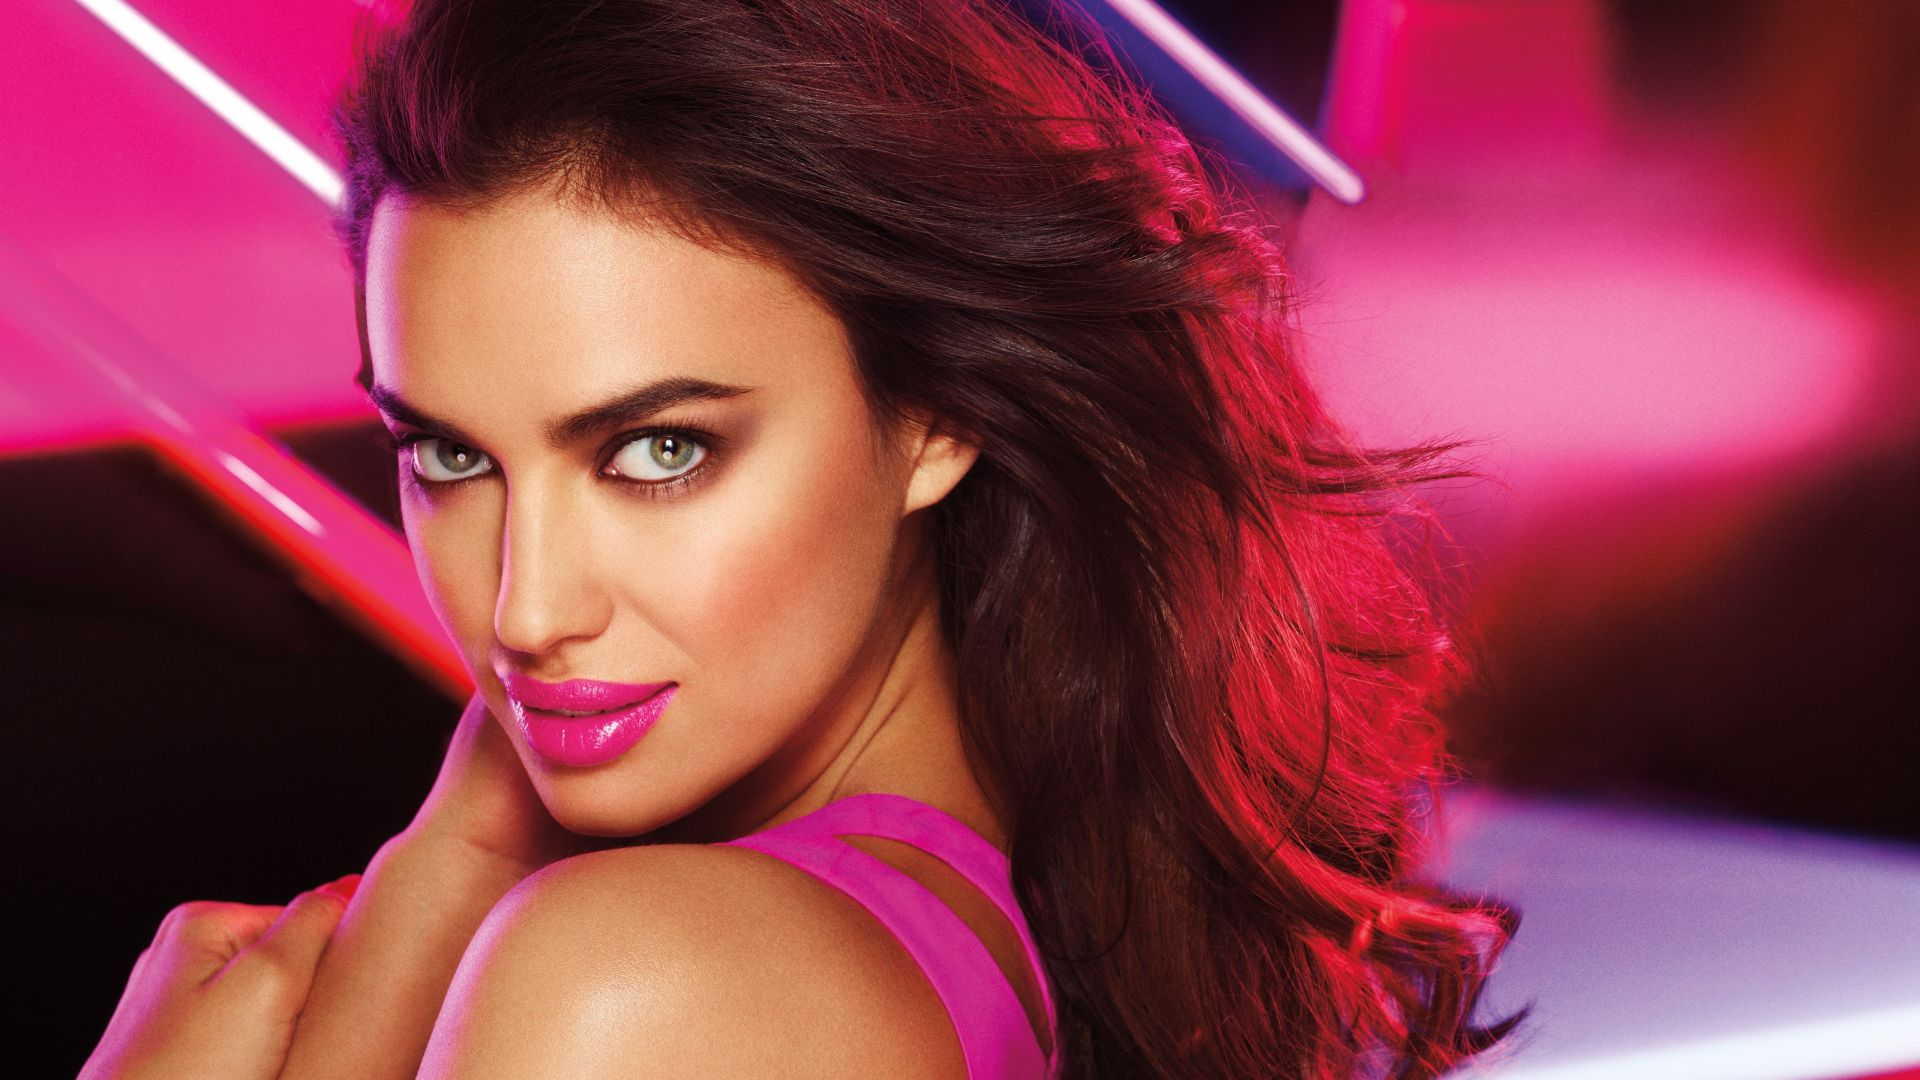 Irina Shayk, Top Fashion Models, model, brunette